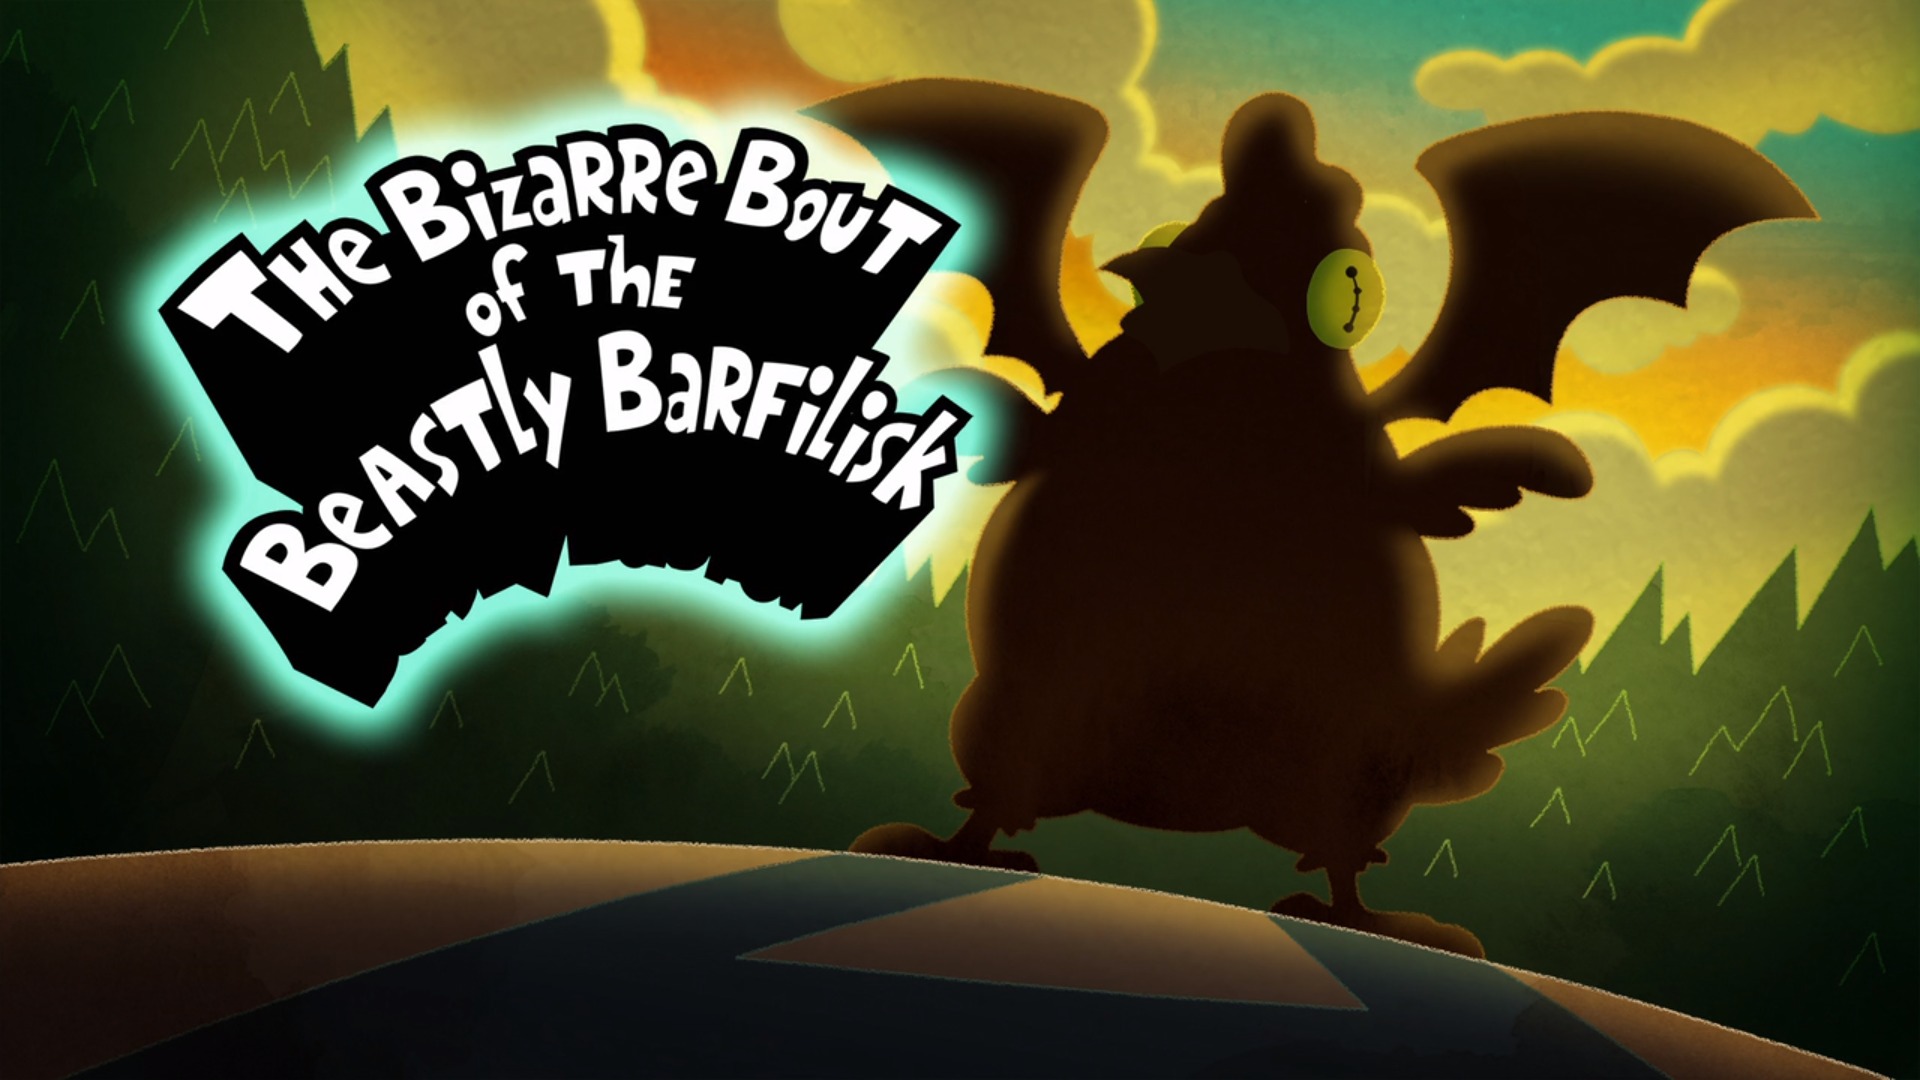 The Bizarre Bout of the Beastly Barfilisk